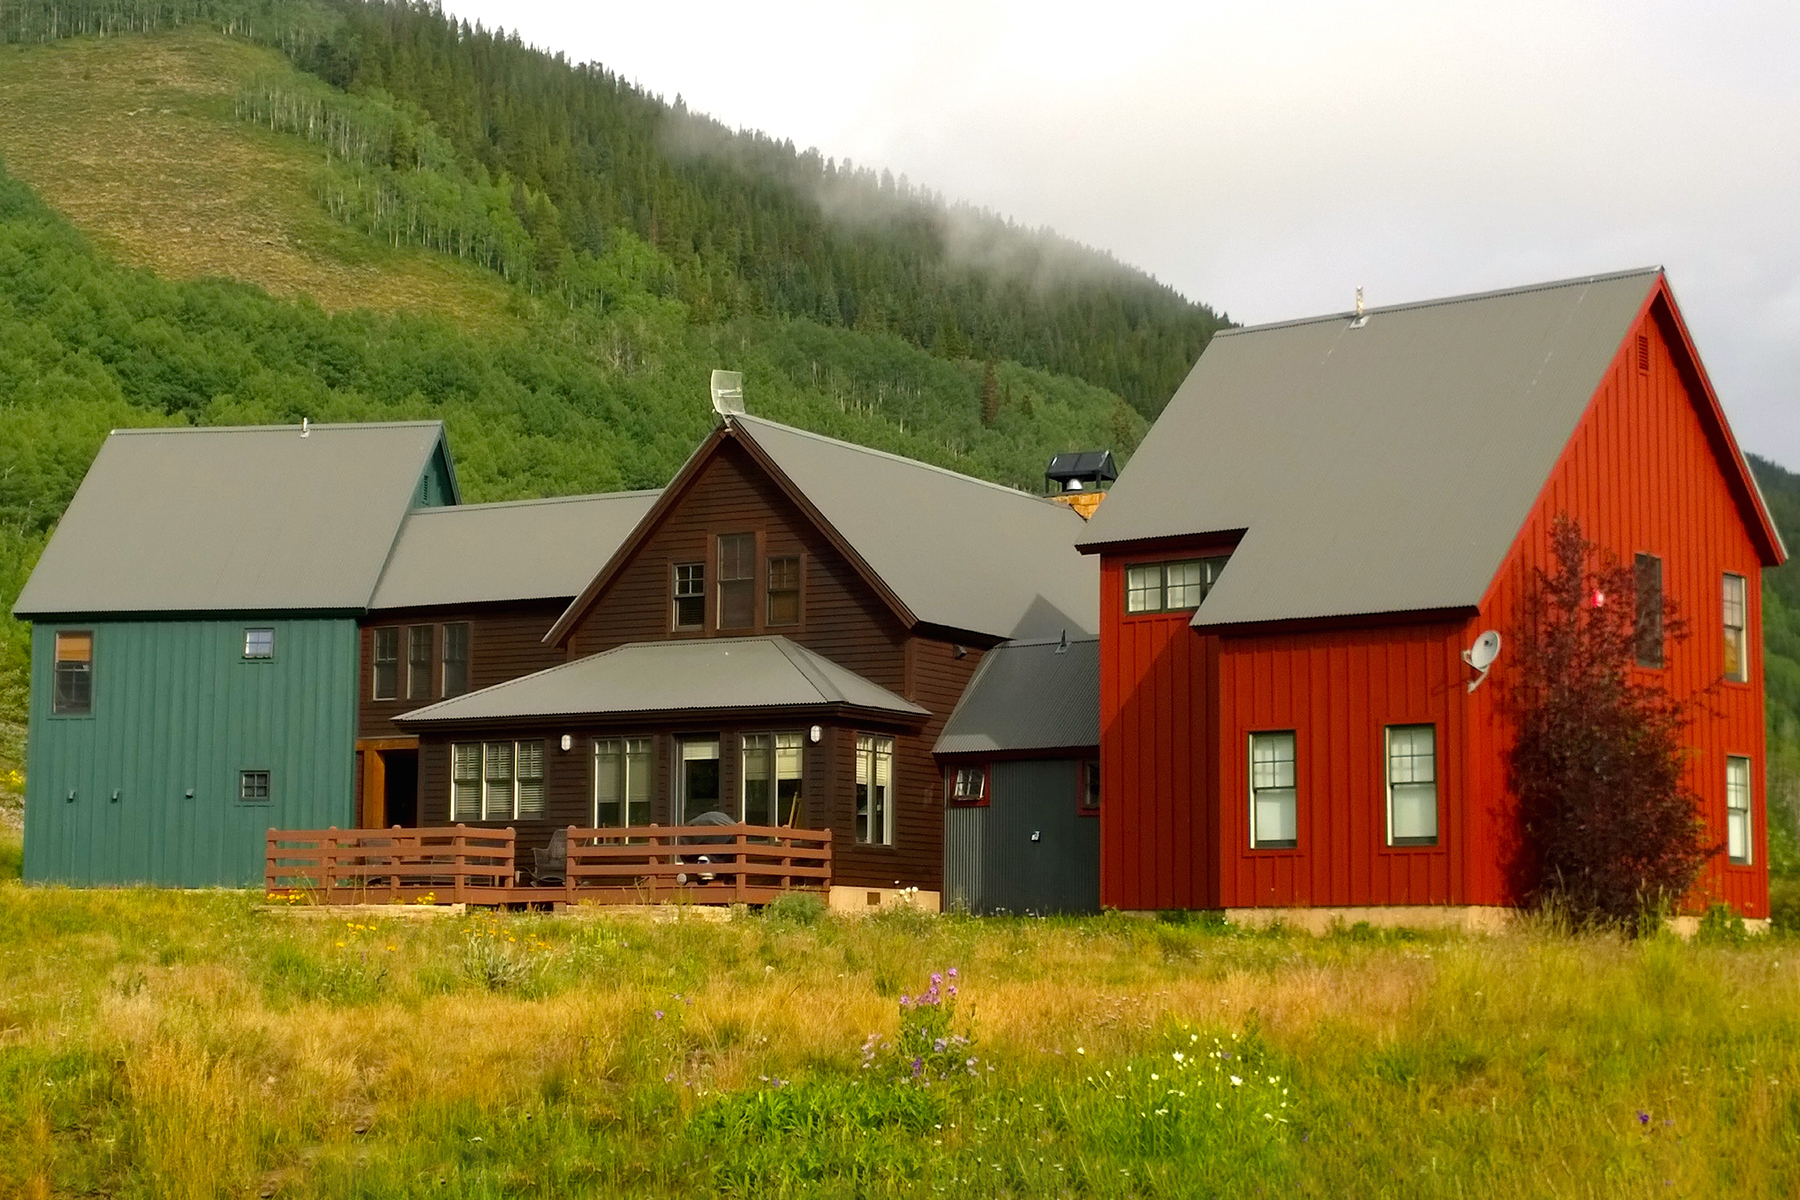 Single Family Home for Sale at Distinguished Residence 781 County Road 4 Crested Butte, Colorado 81224 United States